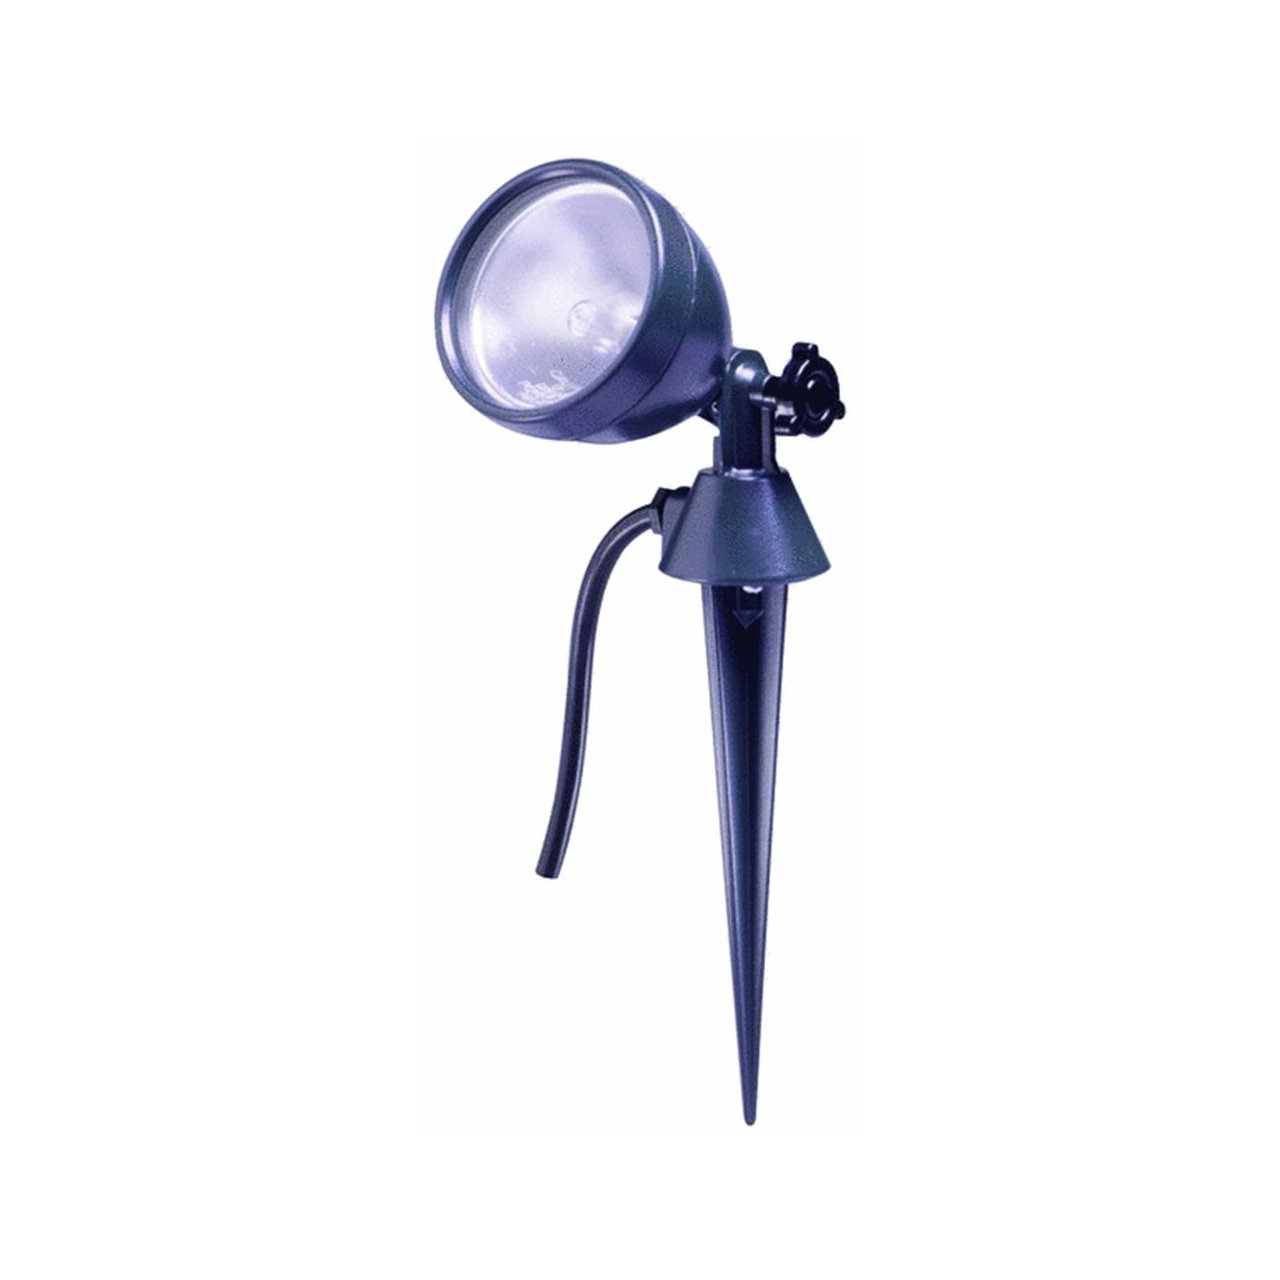 Amazon.com: Cooper Lighting - Outdoor Lighting / Lighting